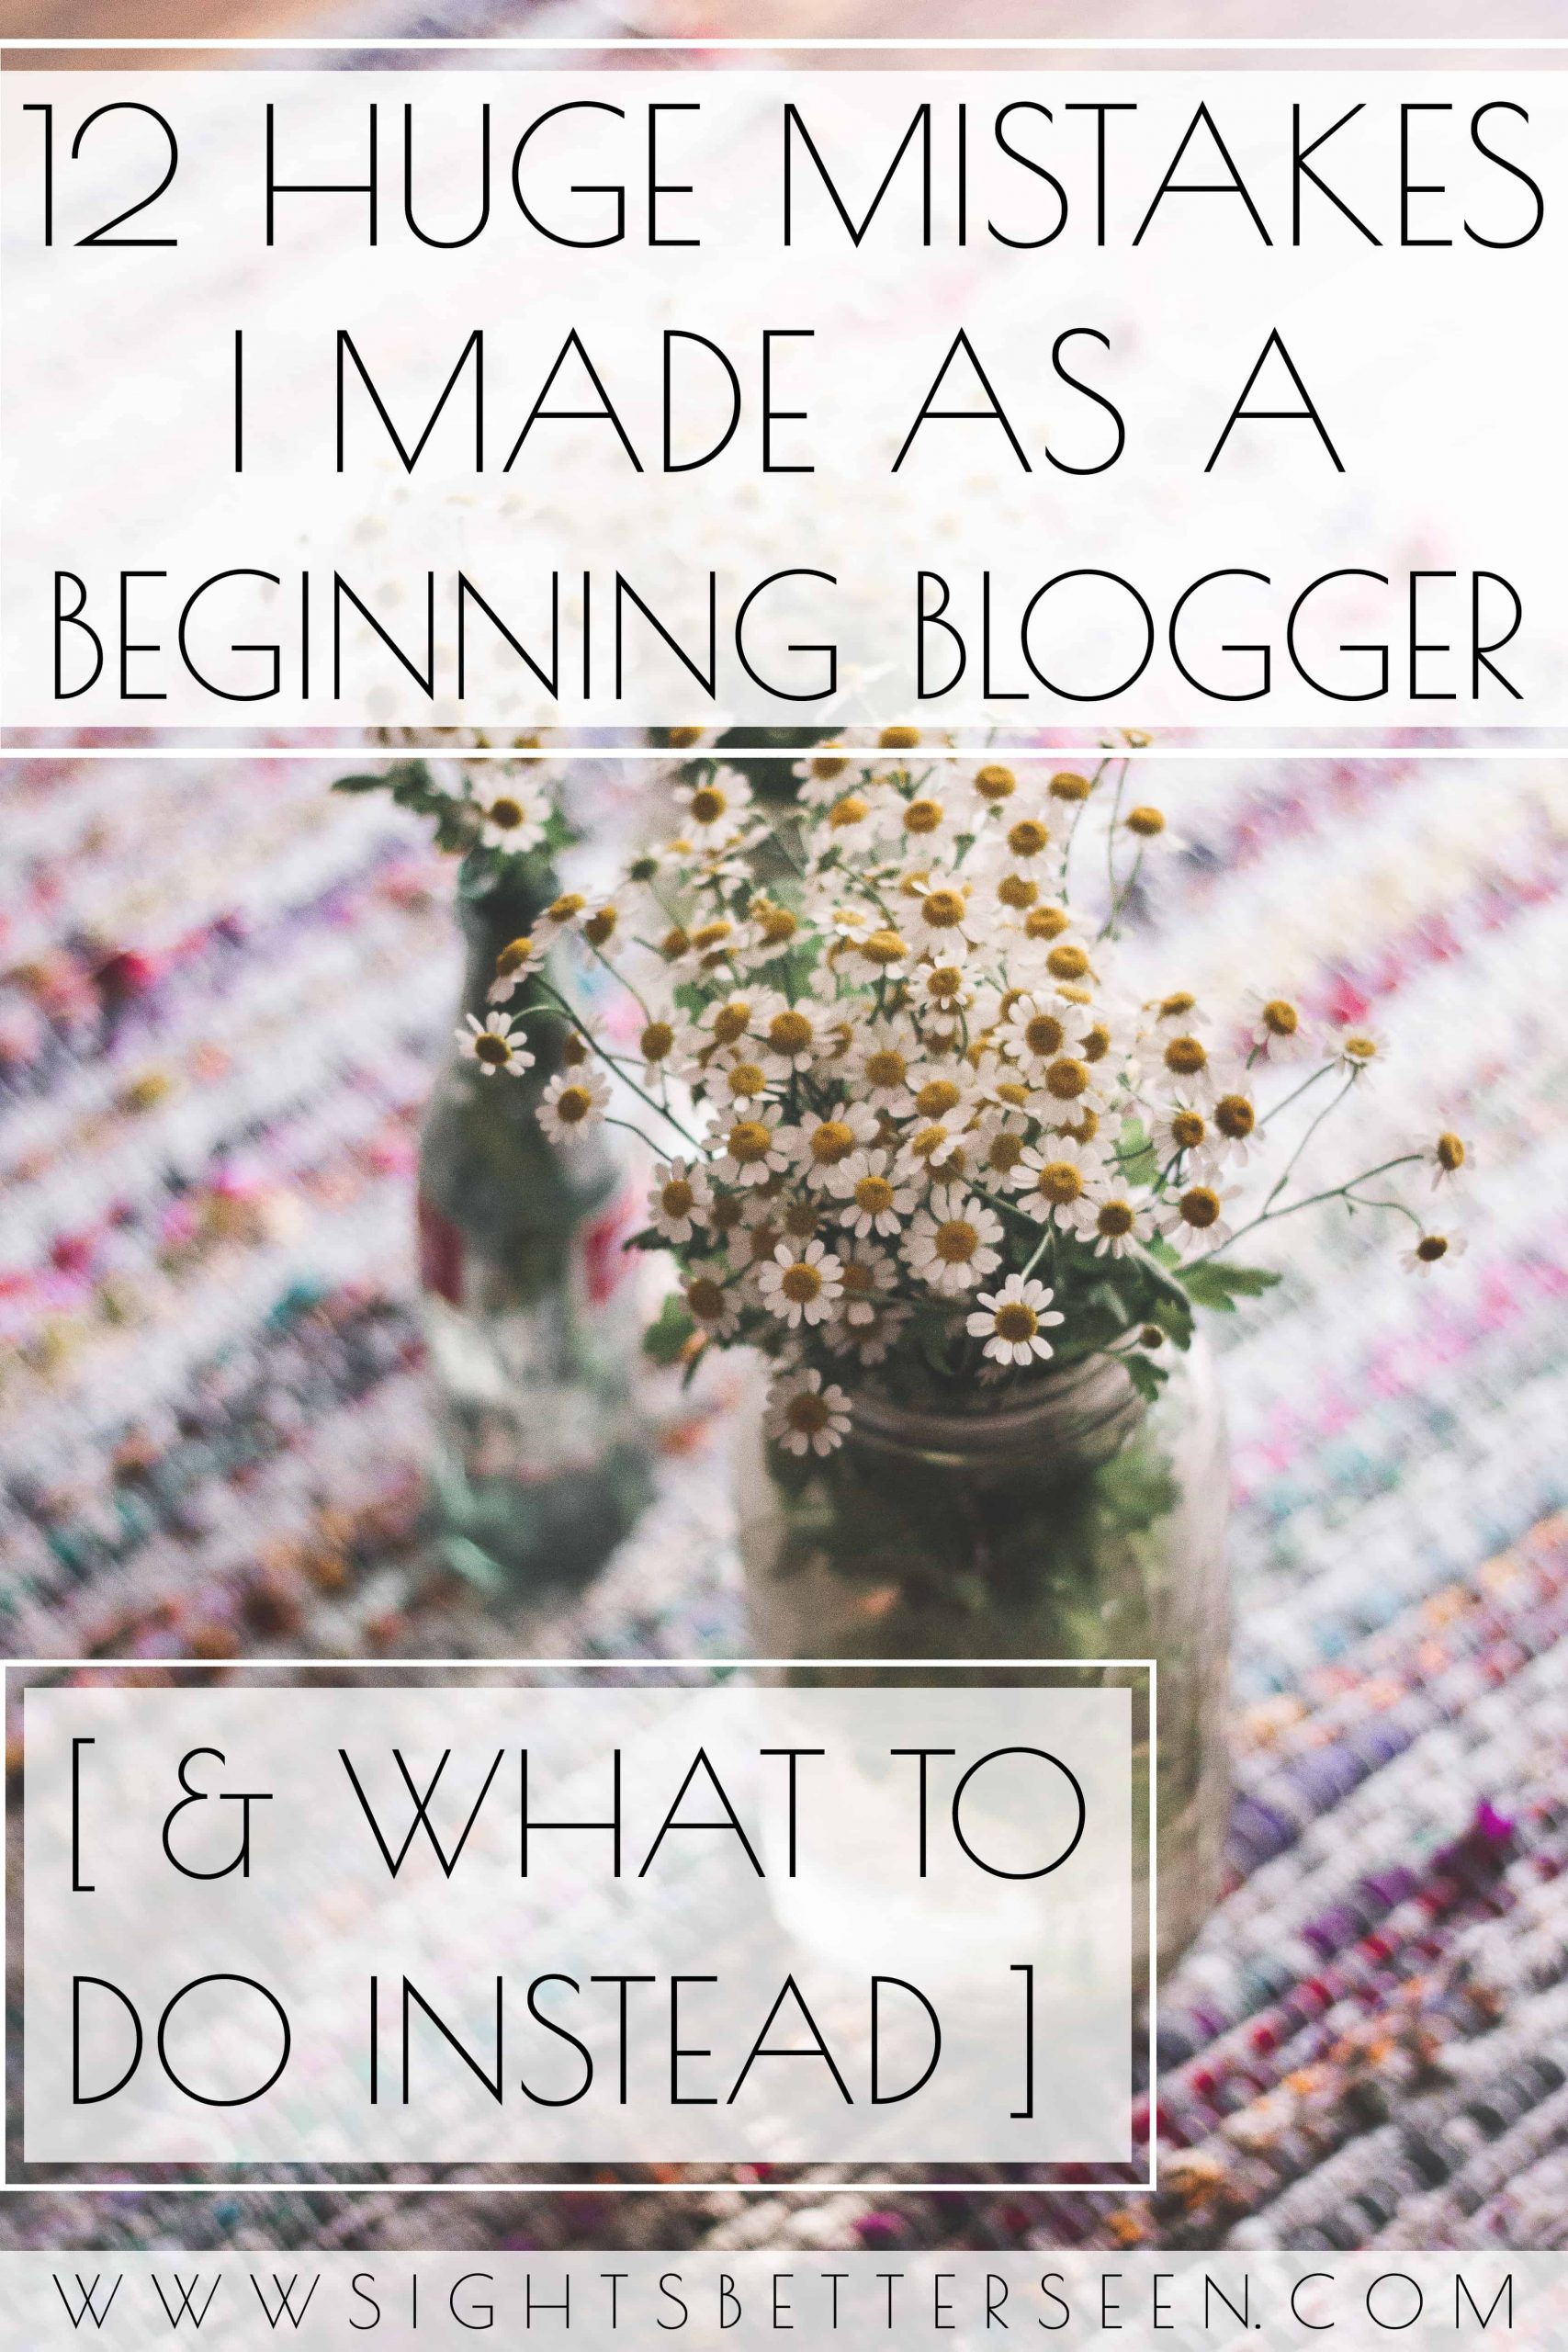 12 huge mistakes I made as a beginning blogger and how to avoid them.